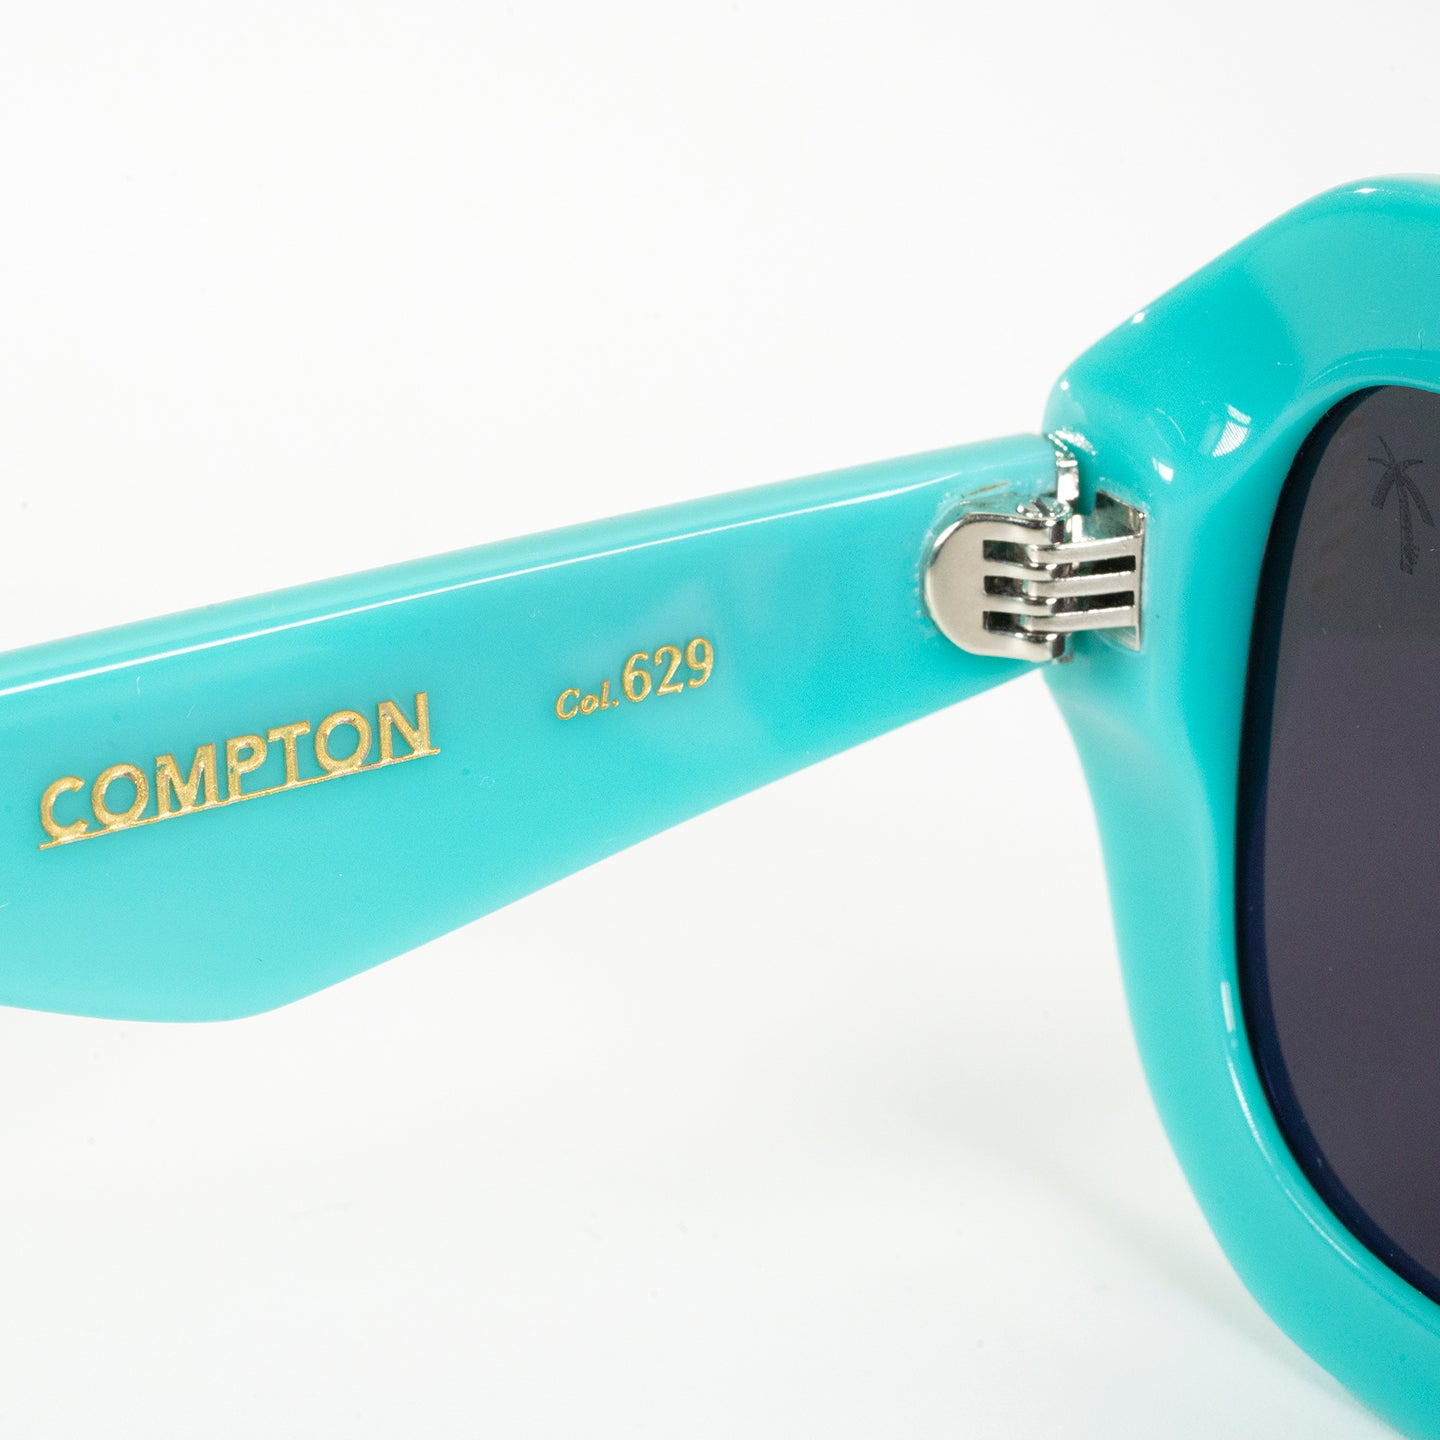 COMPTON in Teal